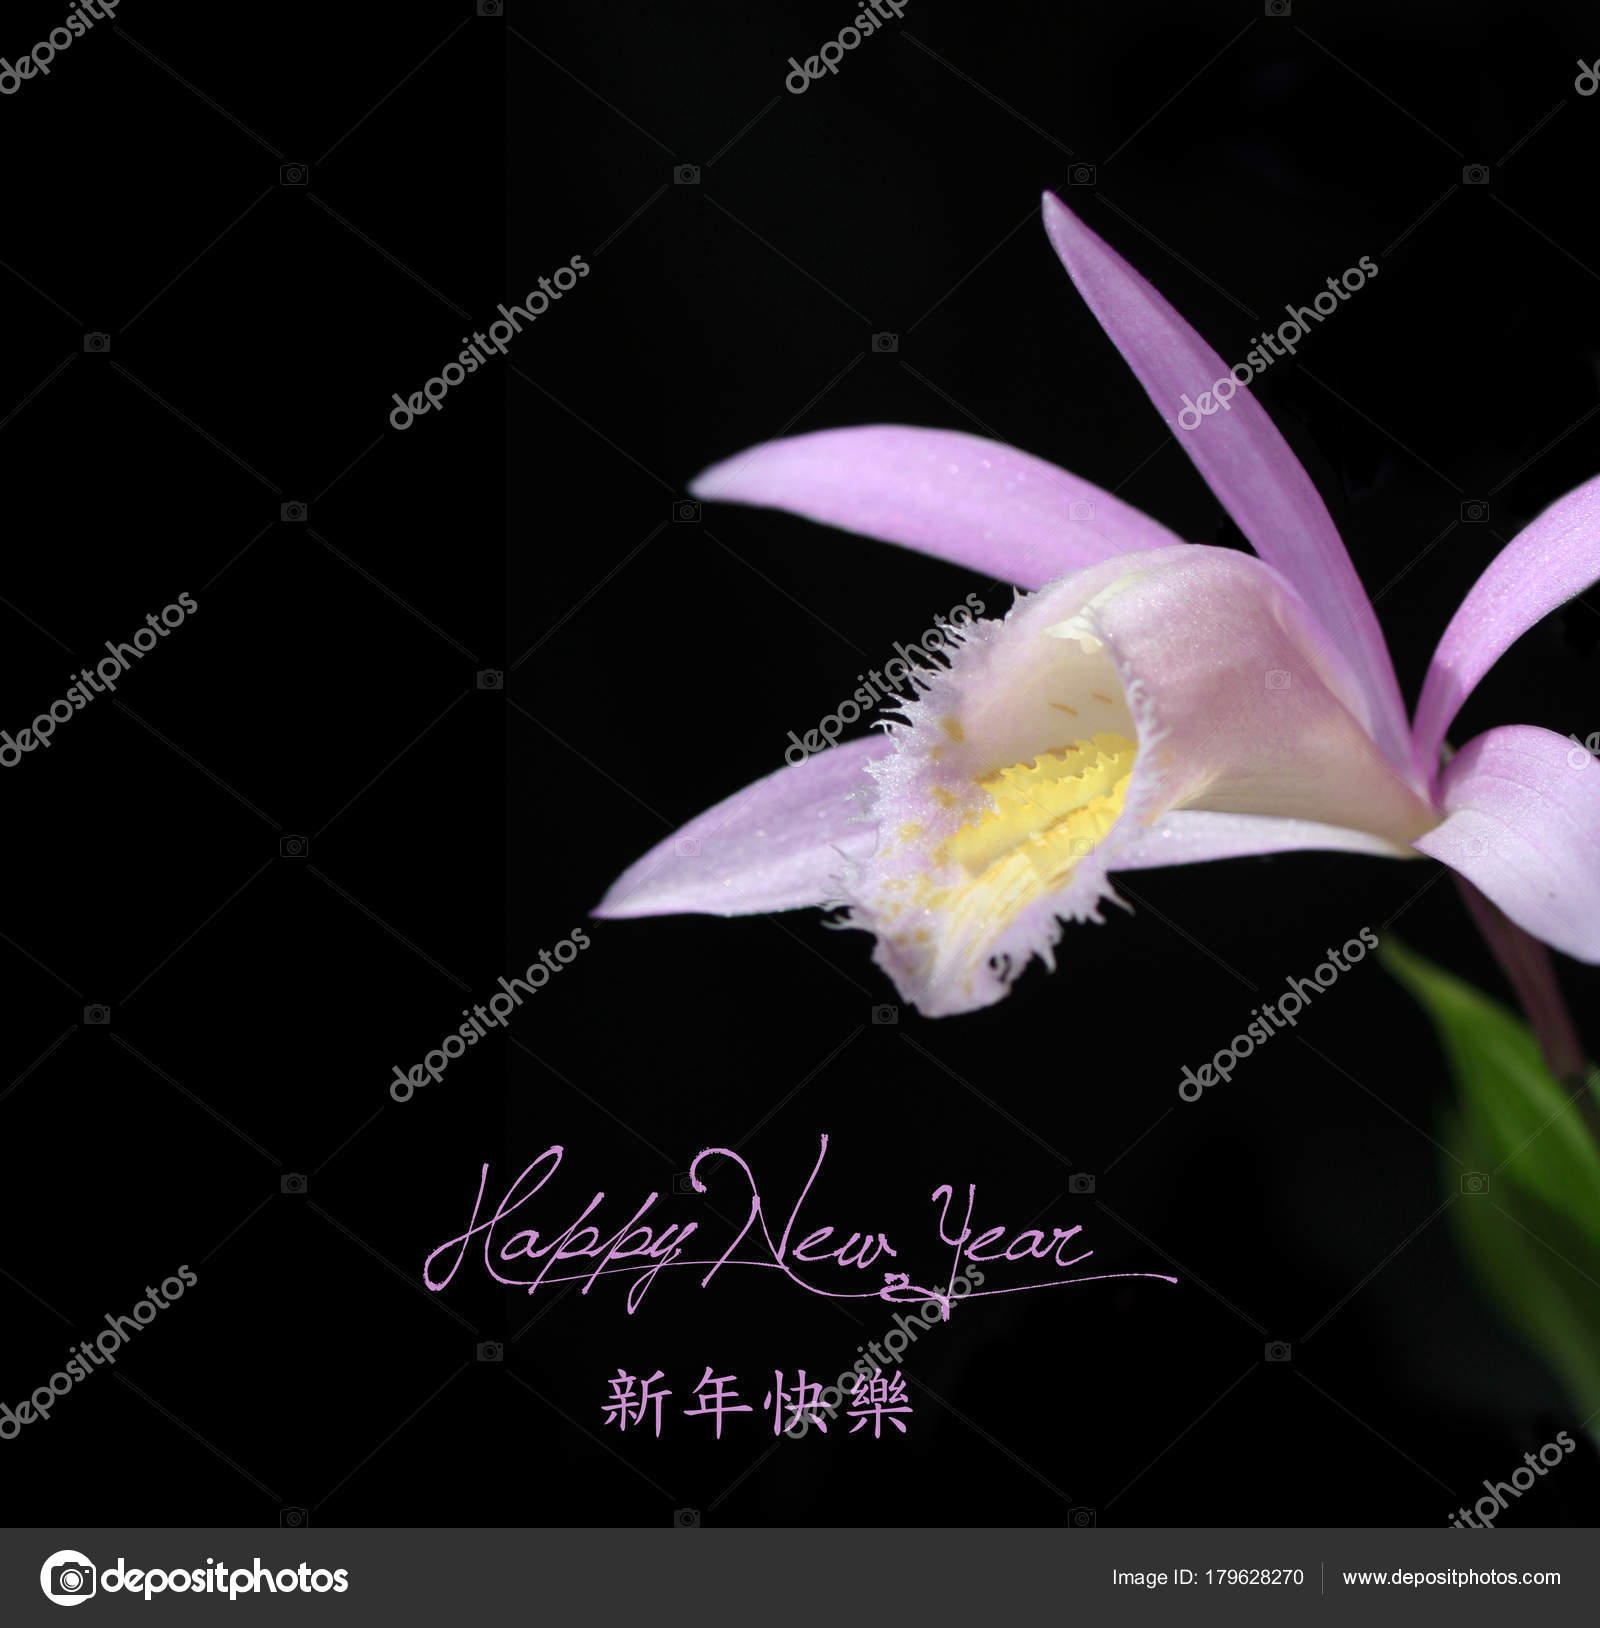 chinese new year background with flower stock photo